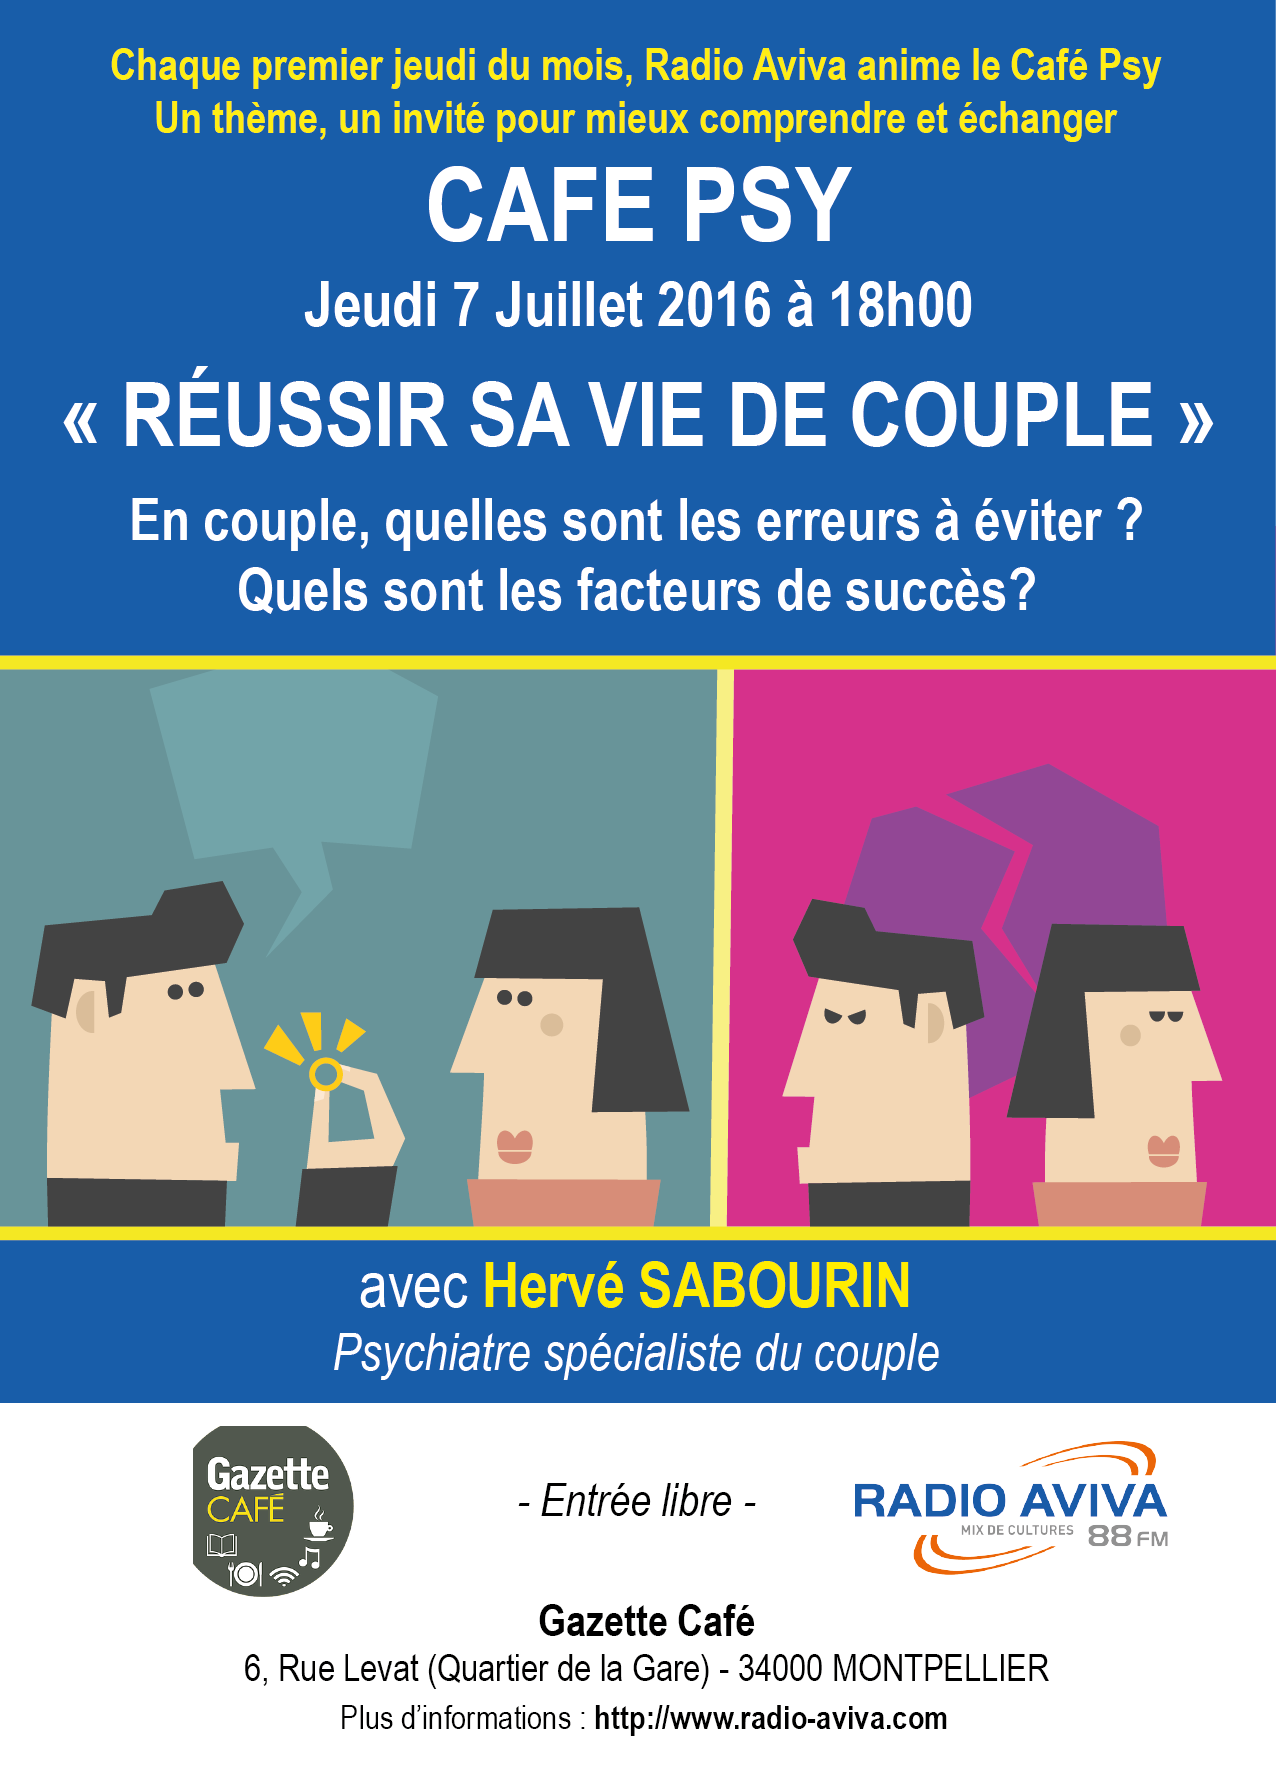 comment reussir sa vie de couple r ponse dans caf psy jeudi 7 juillet 18h00 radio aviva. Black Bedroom Furniture Sets. Home Design Ideas